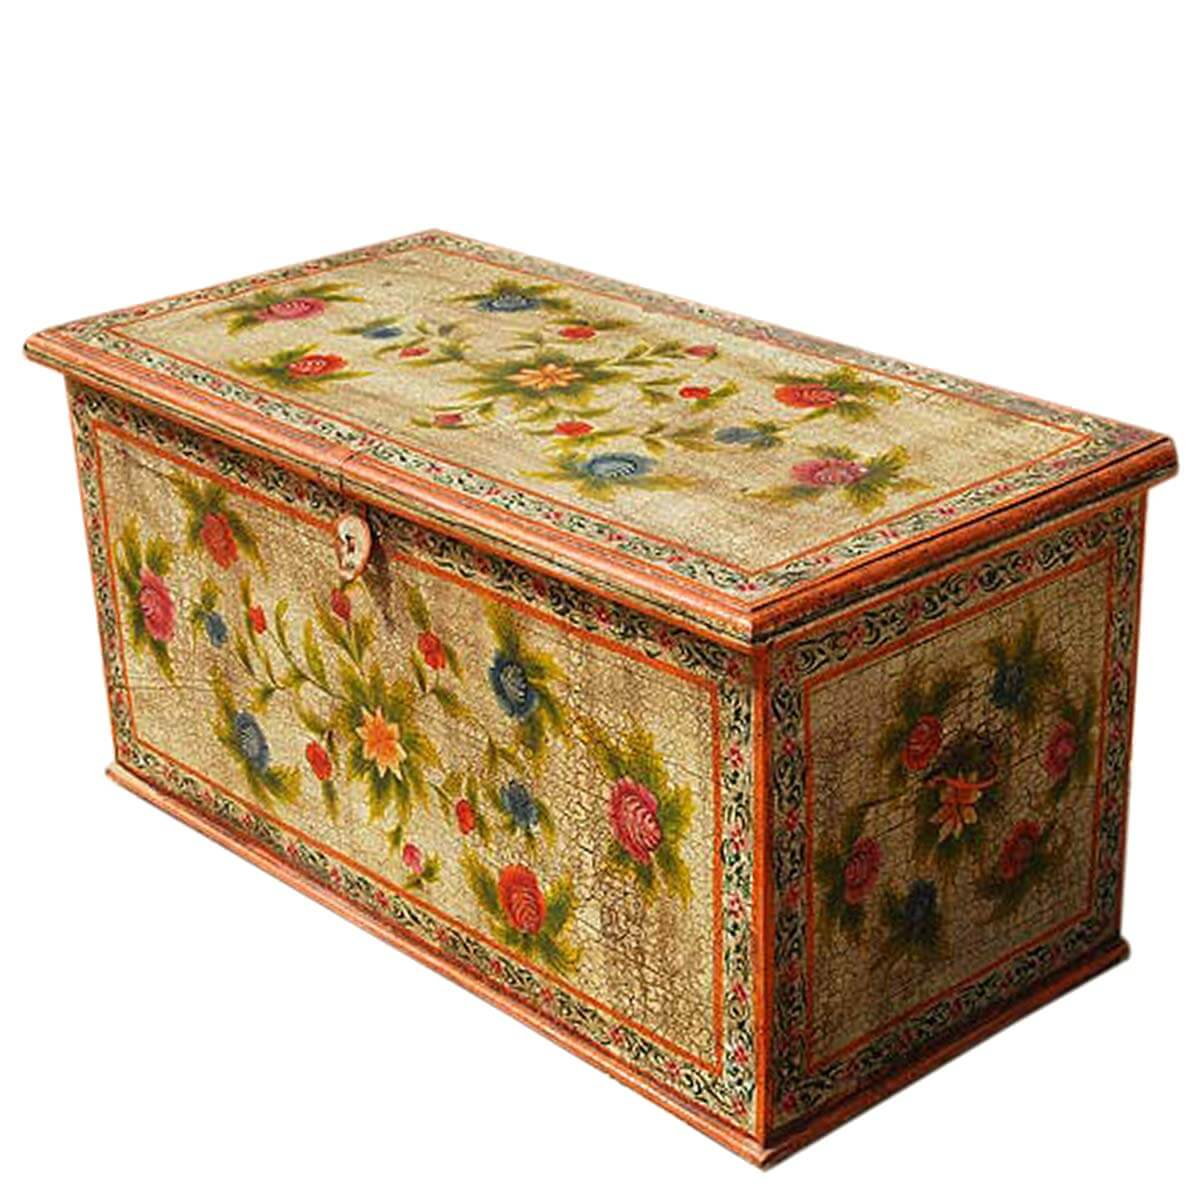 Hardwood hand painted storage trunk coffee table solid hardwood hand painted storage trunk coffee table geotapseo Gallery